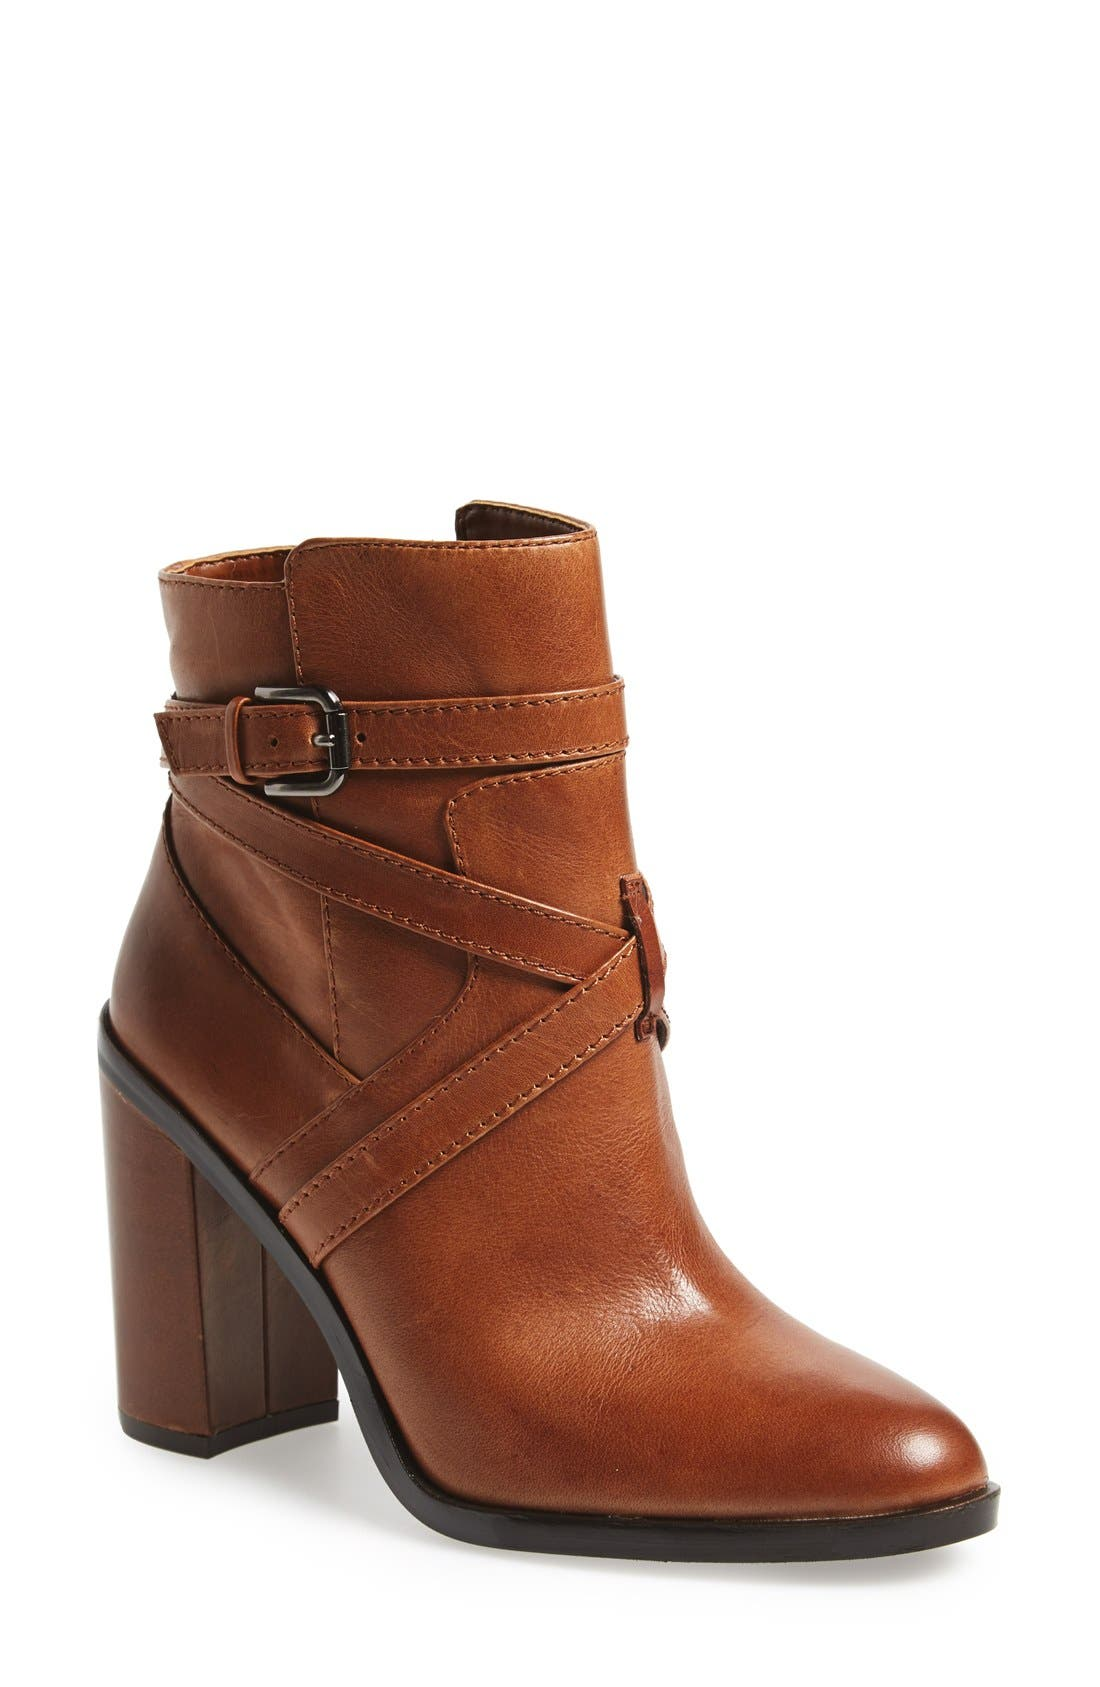 Main Image - Vince Camuto 'Gravell' Belted Boot (Women)